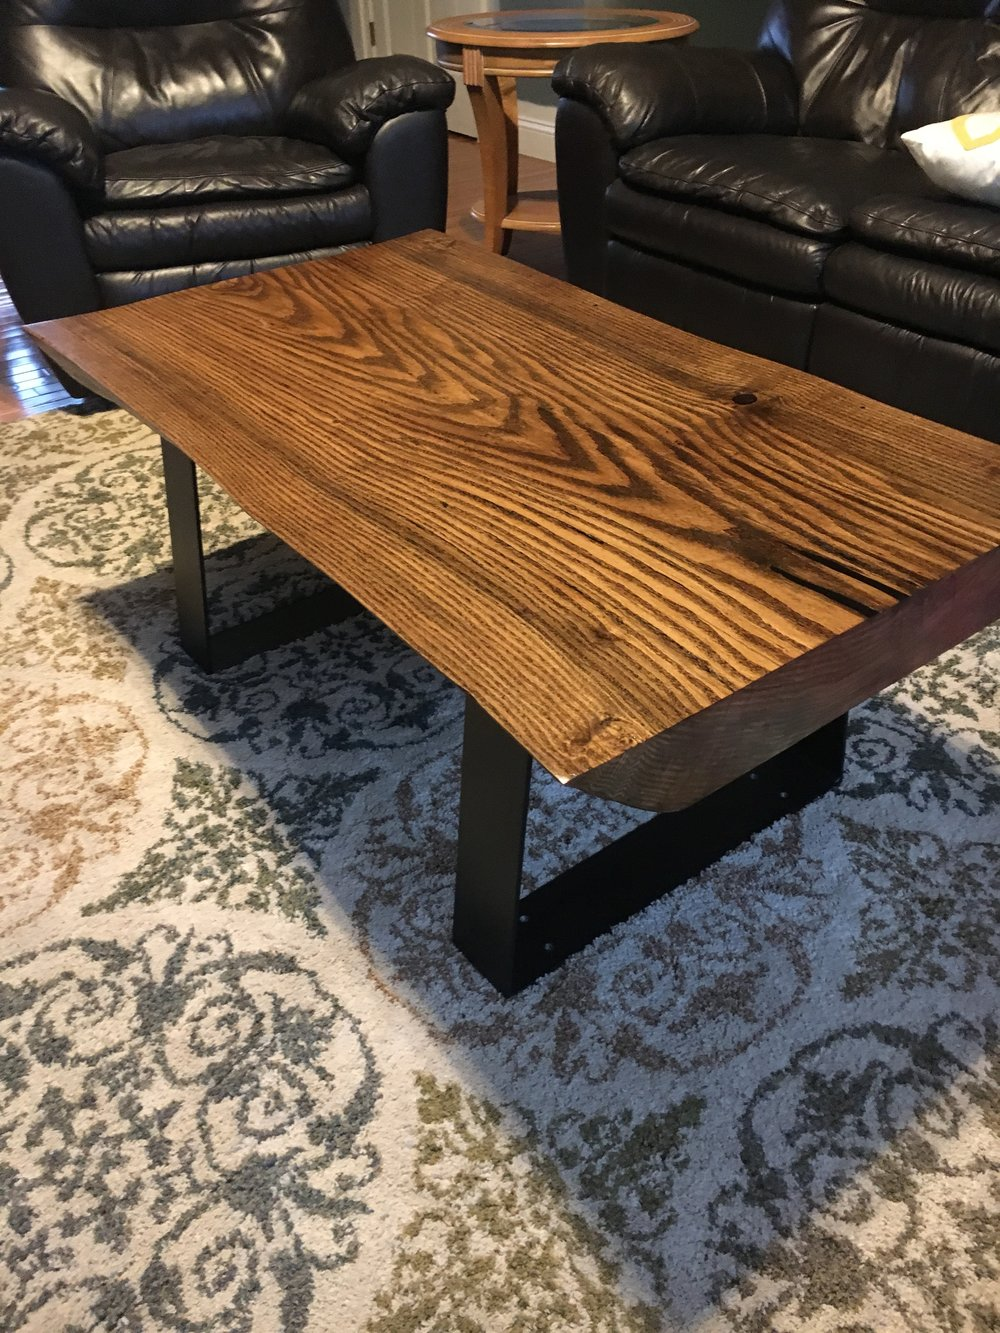 Here At The Red Barn KC We Take Pride In Designing And Building Truly  Unique Pieces Of Furniture. We Have Done Everything From Home Decor Signs  To A 12u0027 ...